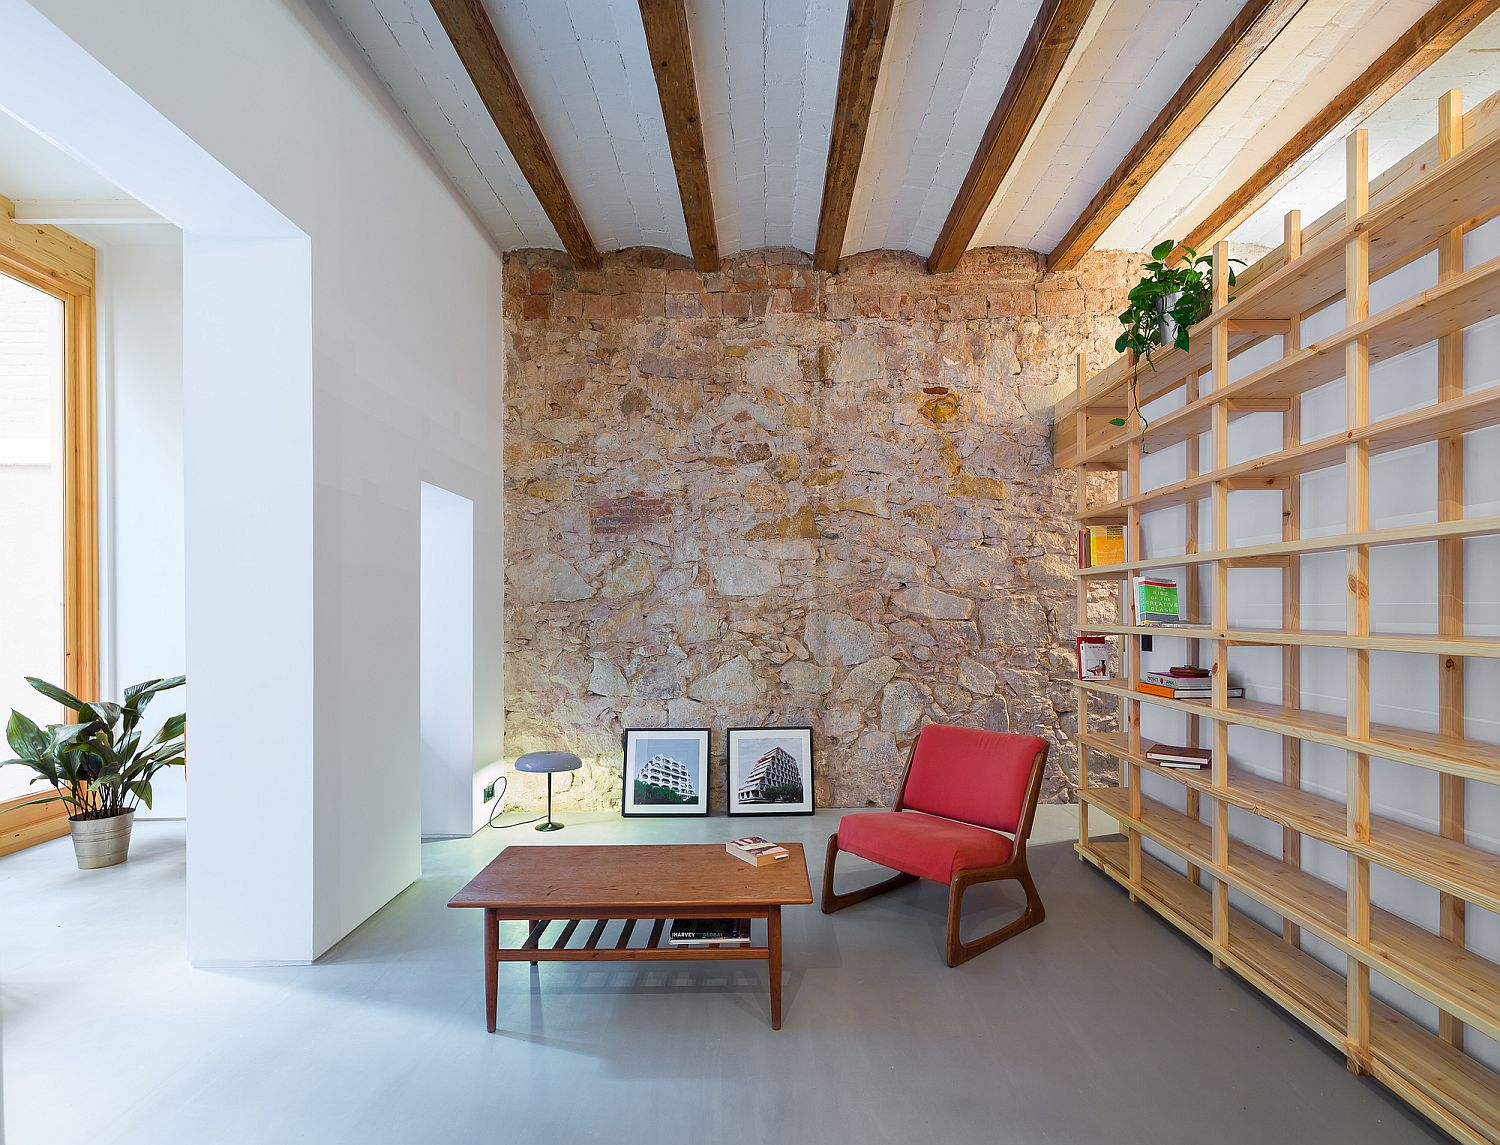 Polished interior makeover for the small Barcelona apartment